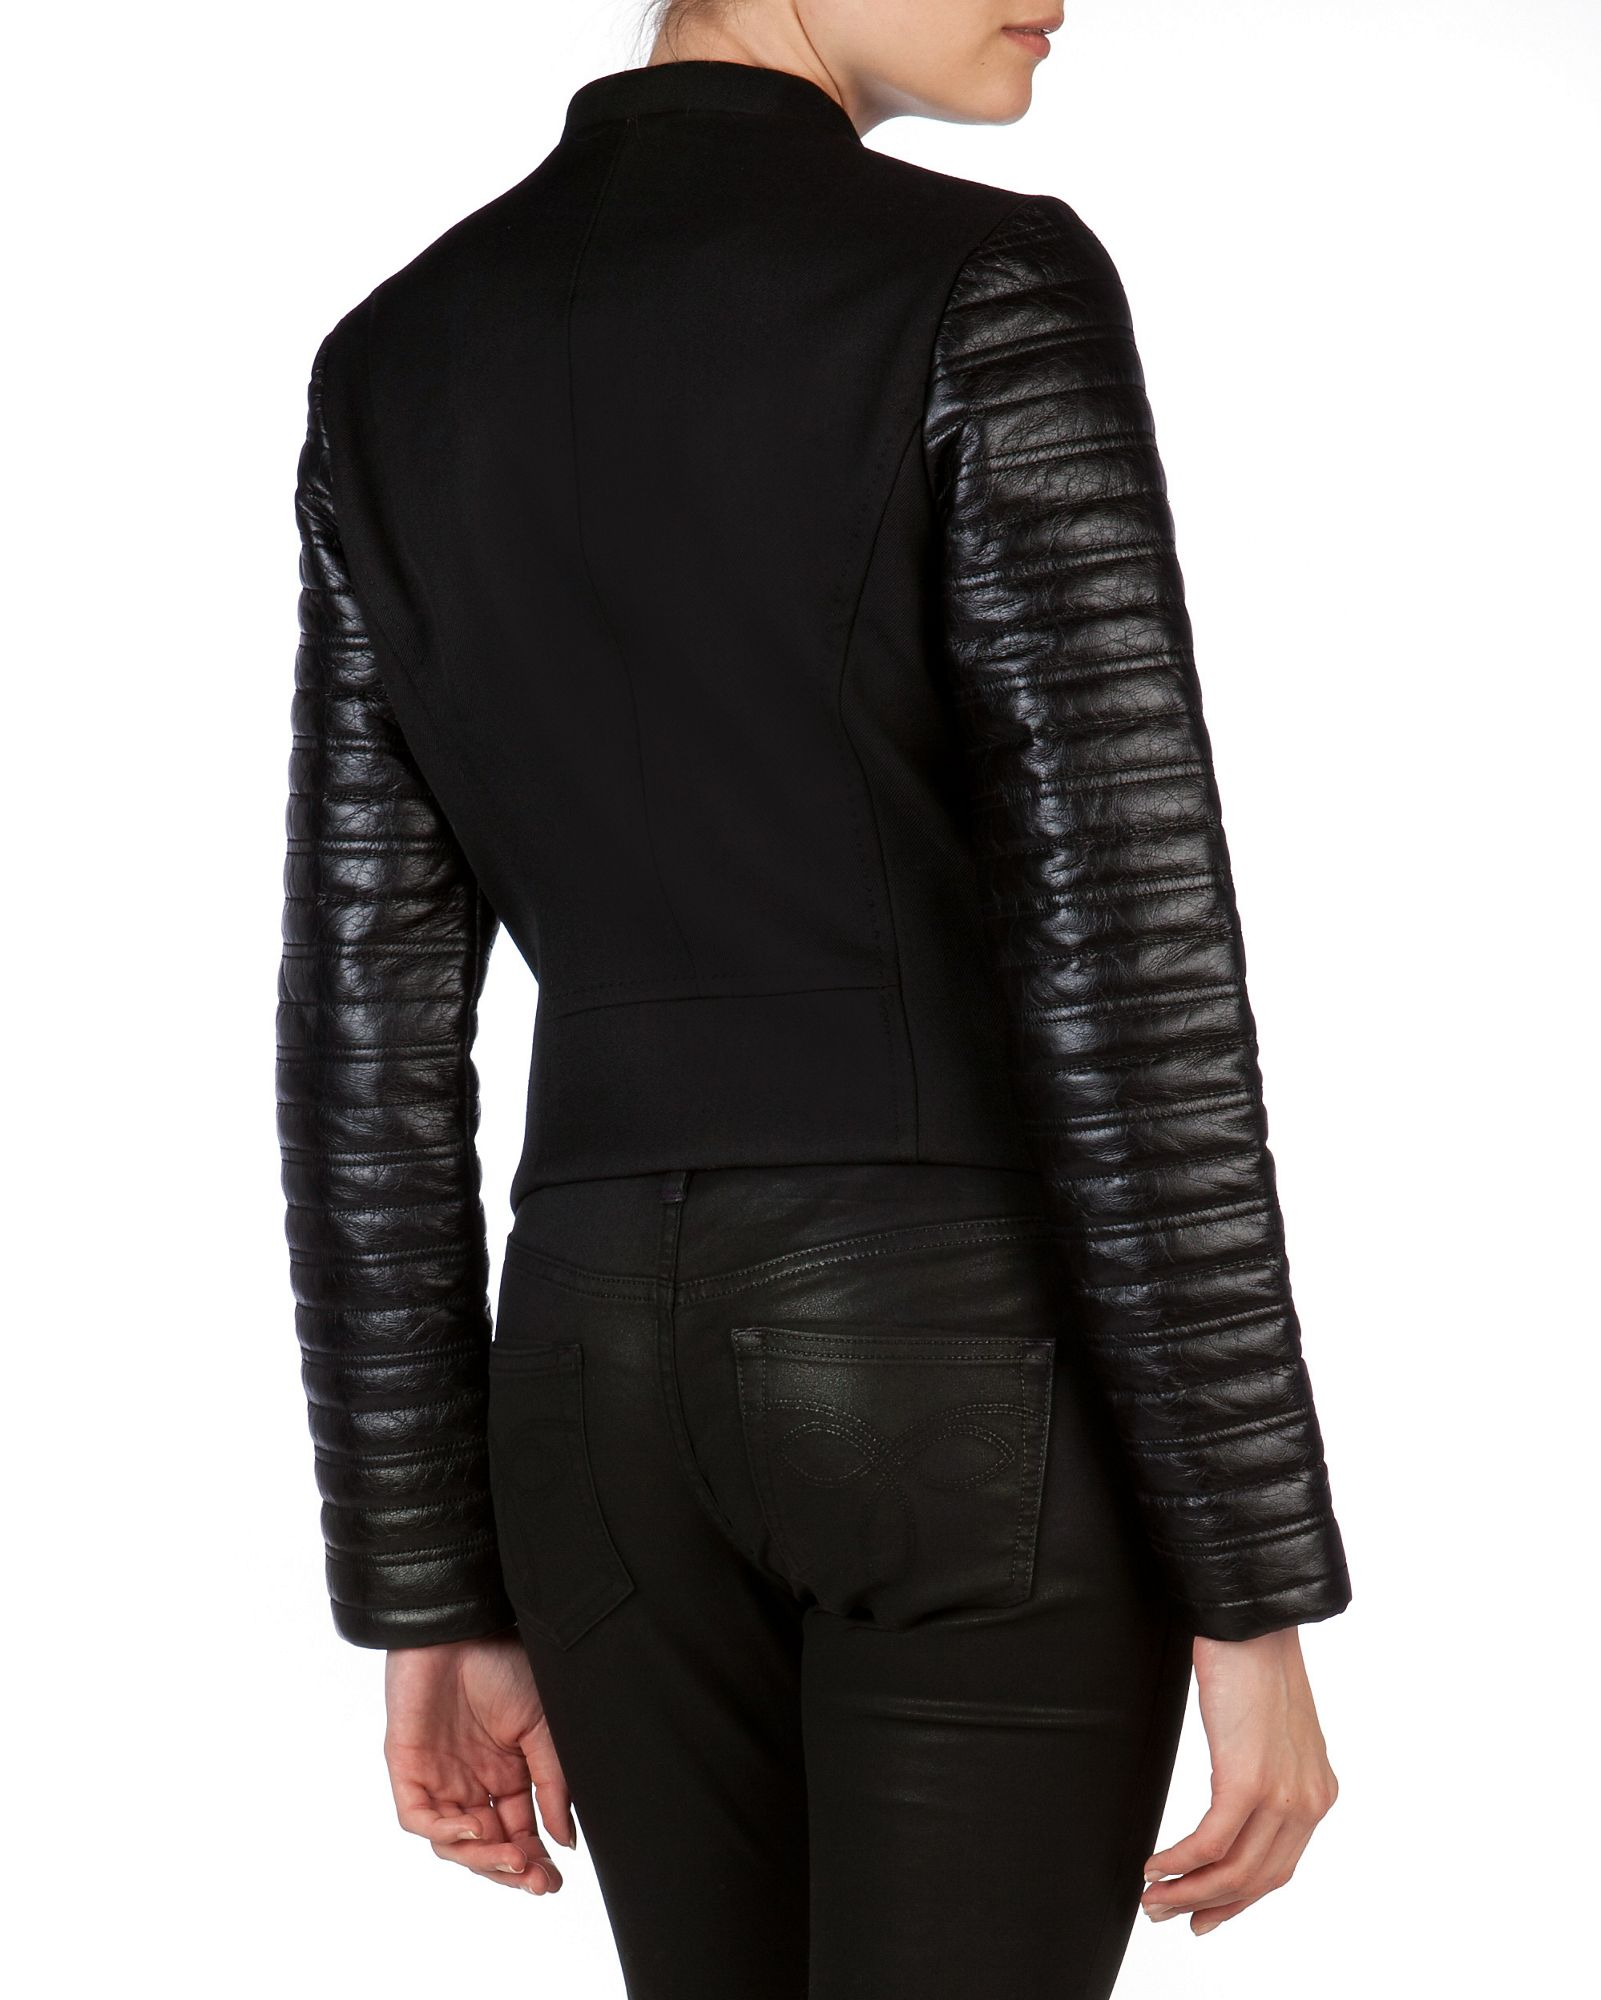 Ted baker coat with leather sleeves